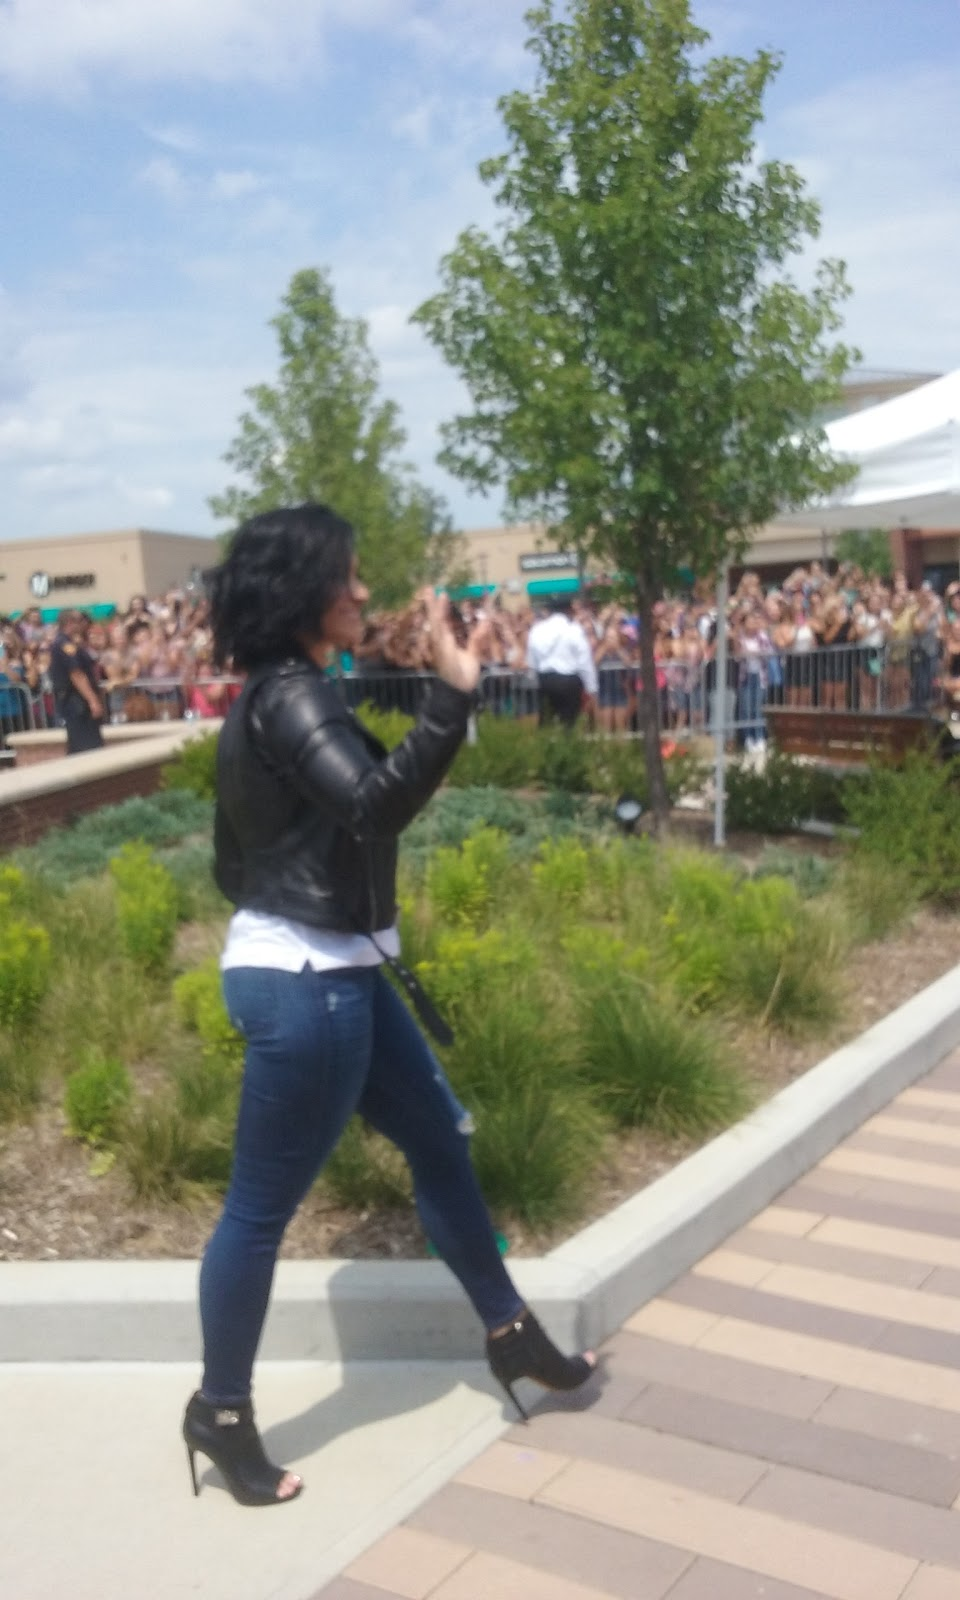 Raymonds ramble demi lovato nick jonas appear at chicago premium squad as i like to call them kept us entertained for another two hours until demi and nick arrived just after 1 pm that is when the madness ensued m4hsunfo